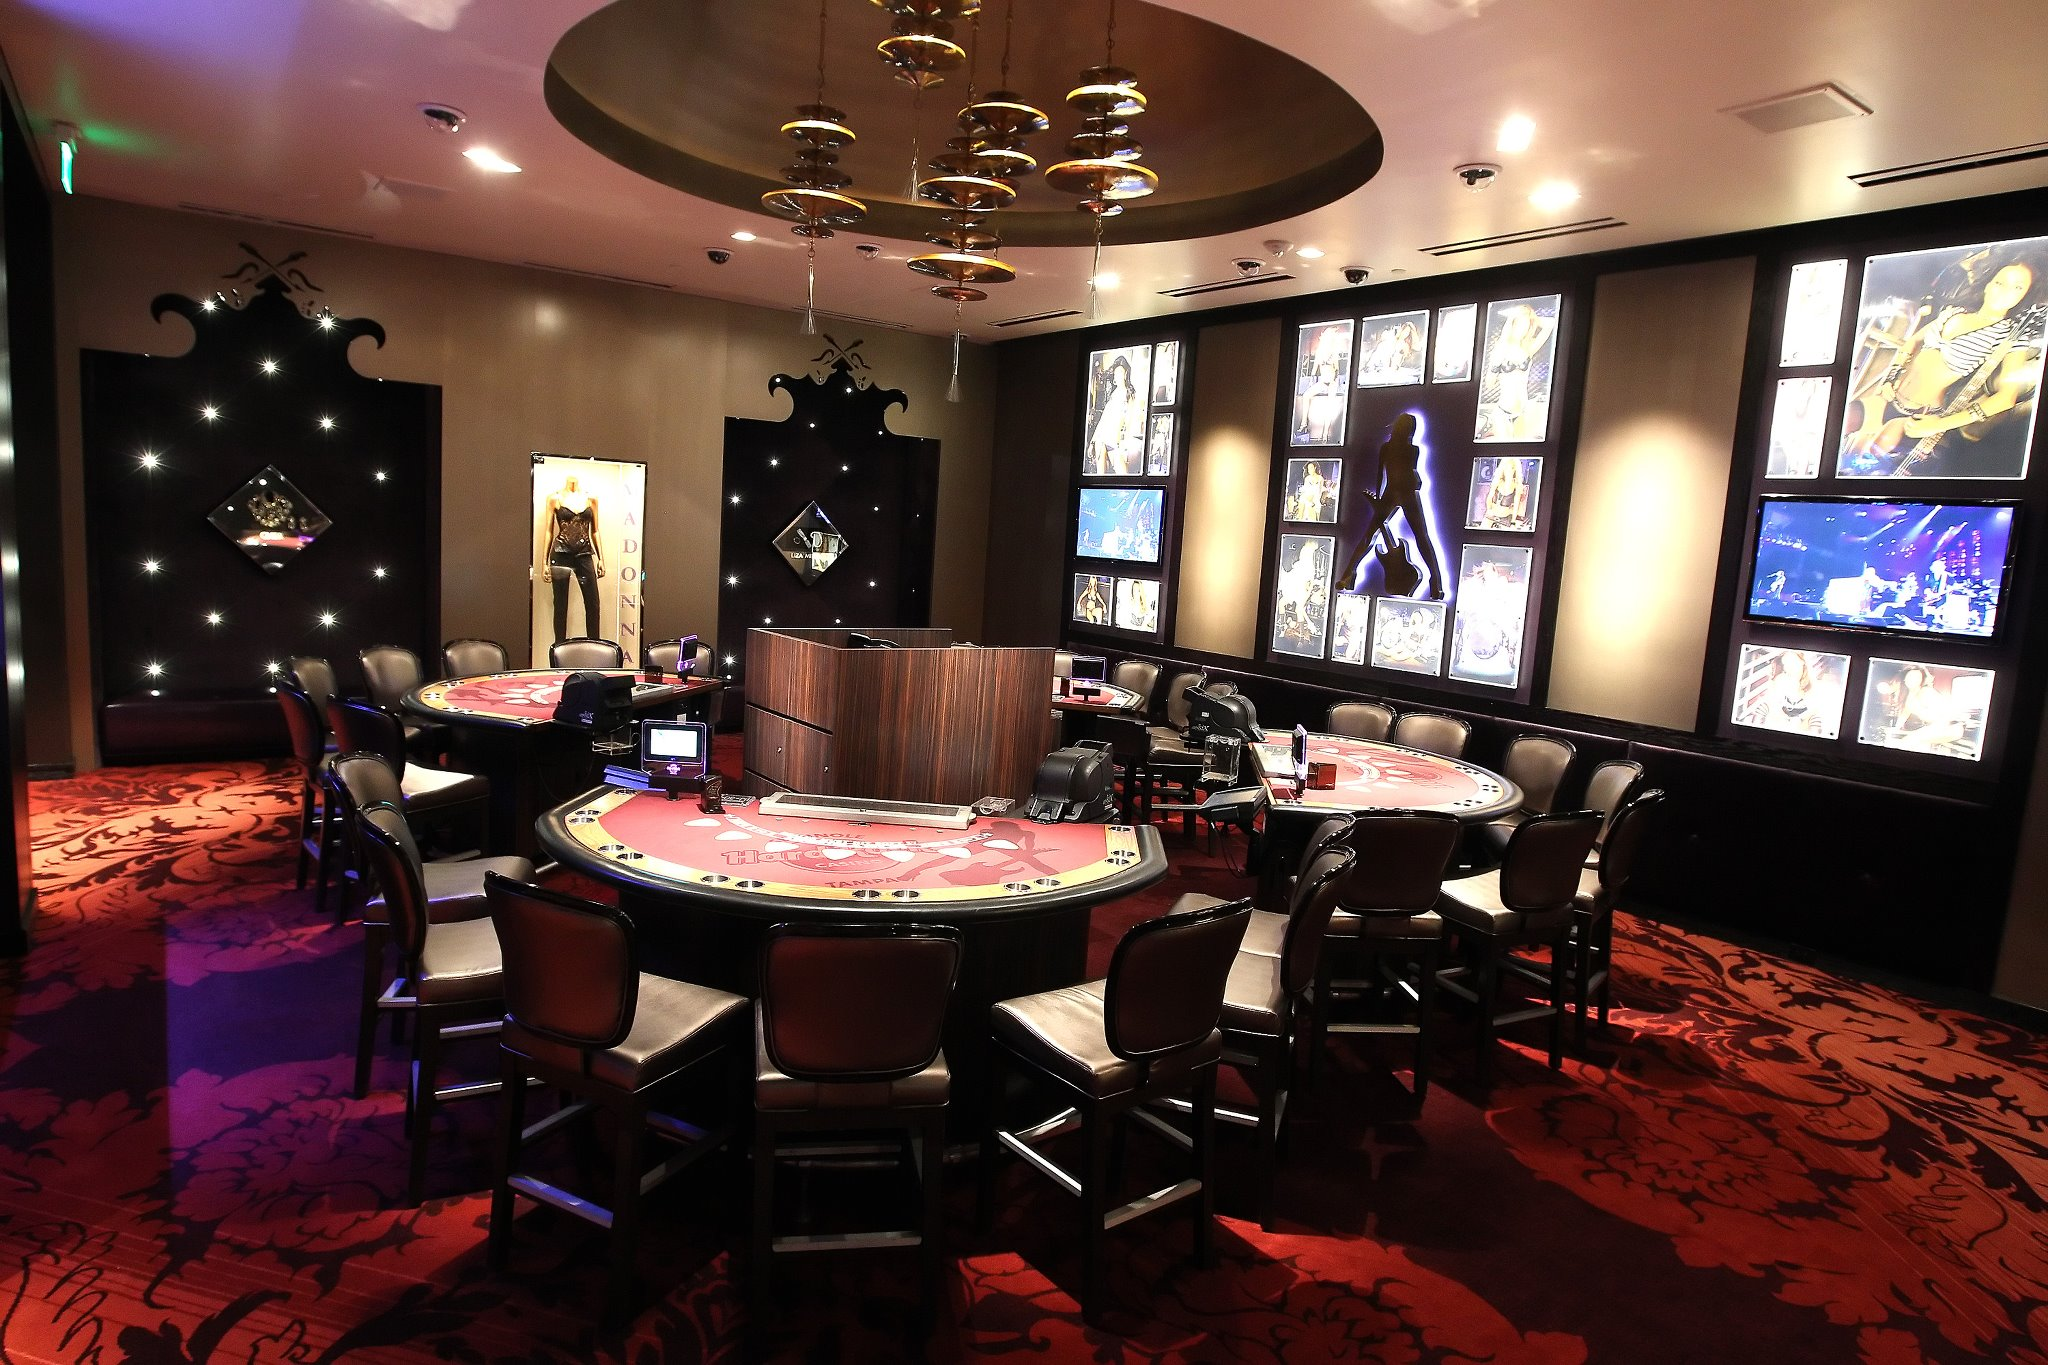 Hard rock casino hollywood perdeu e encontrou